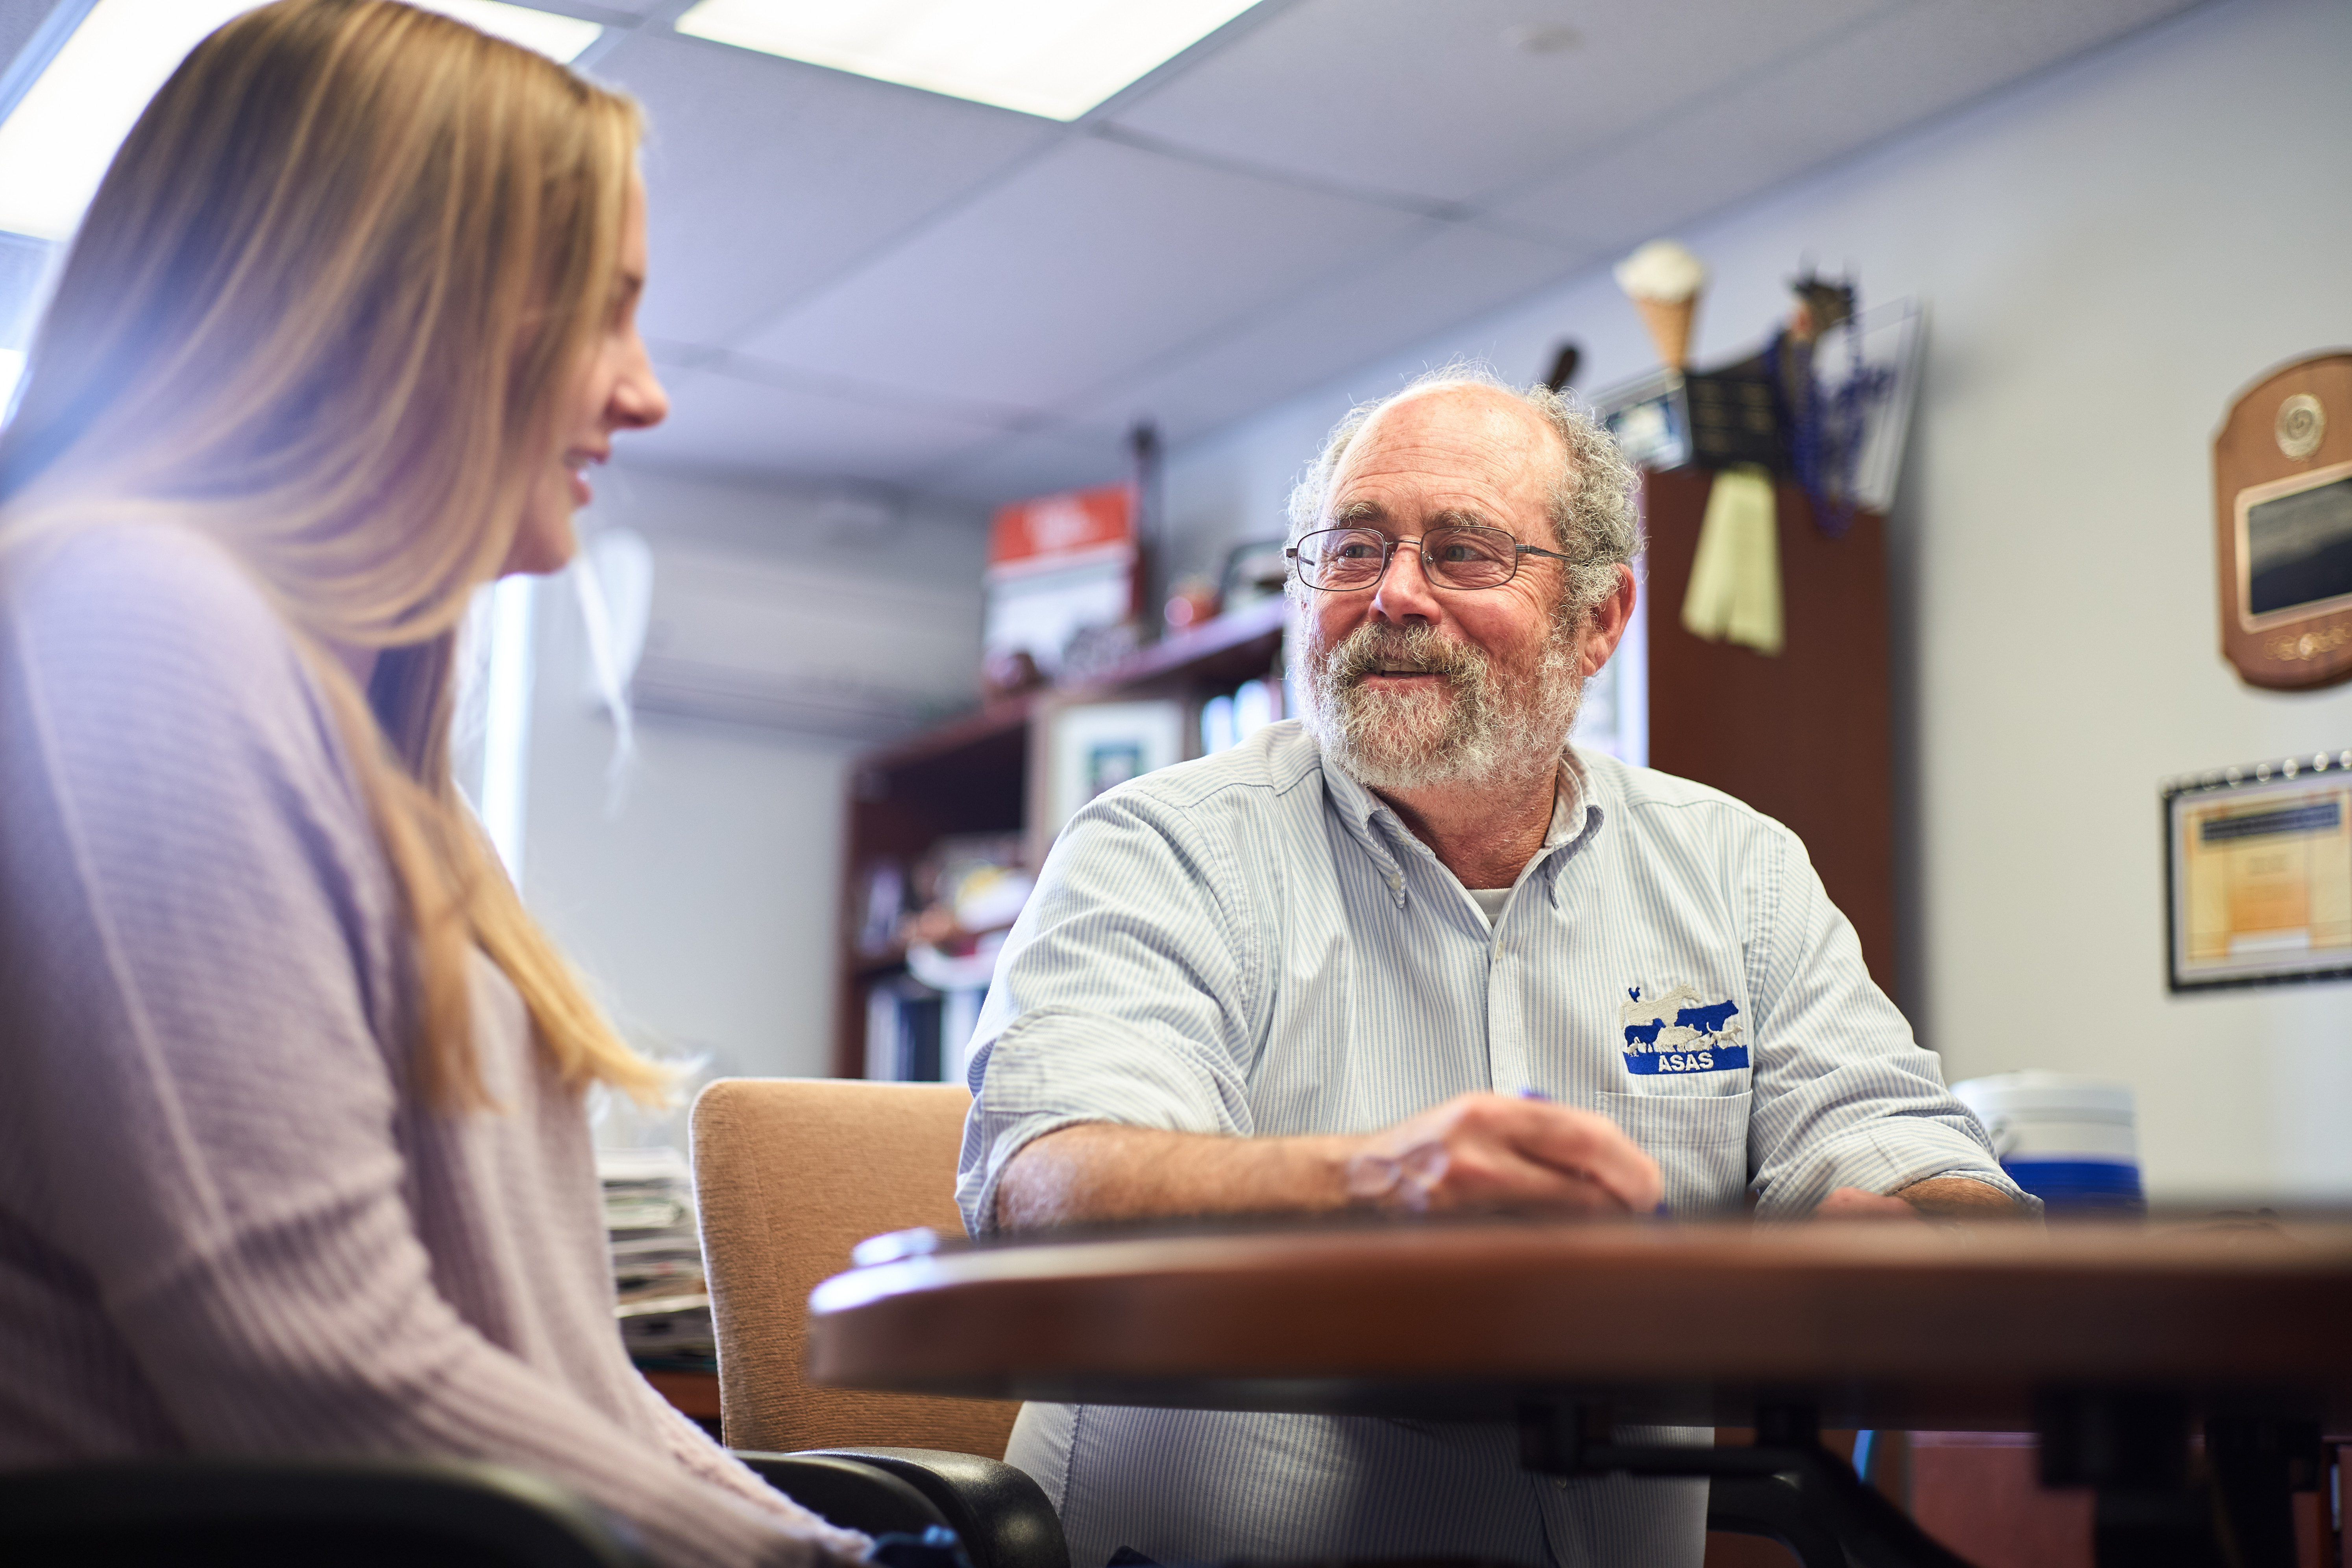 Steven Zinn, professor and head of animal scicence, in an advising session with C.J. Mozeika '20 (CAHNR) at his office in the George C. White Building on Oct. 16, 2019. (Peter Morenus/UConn Photo)